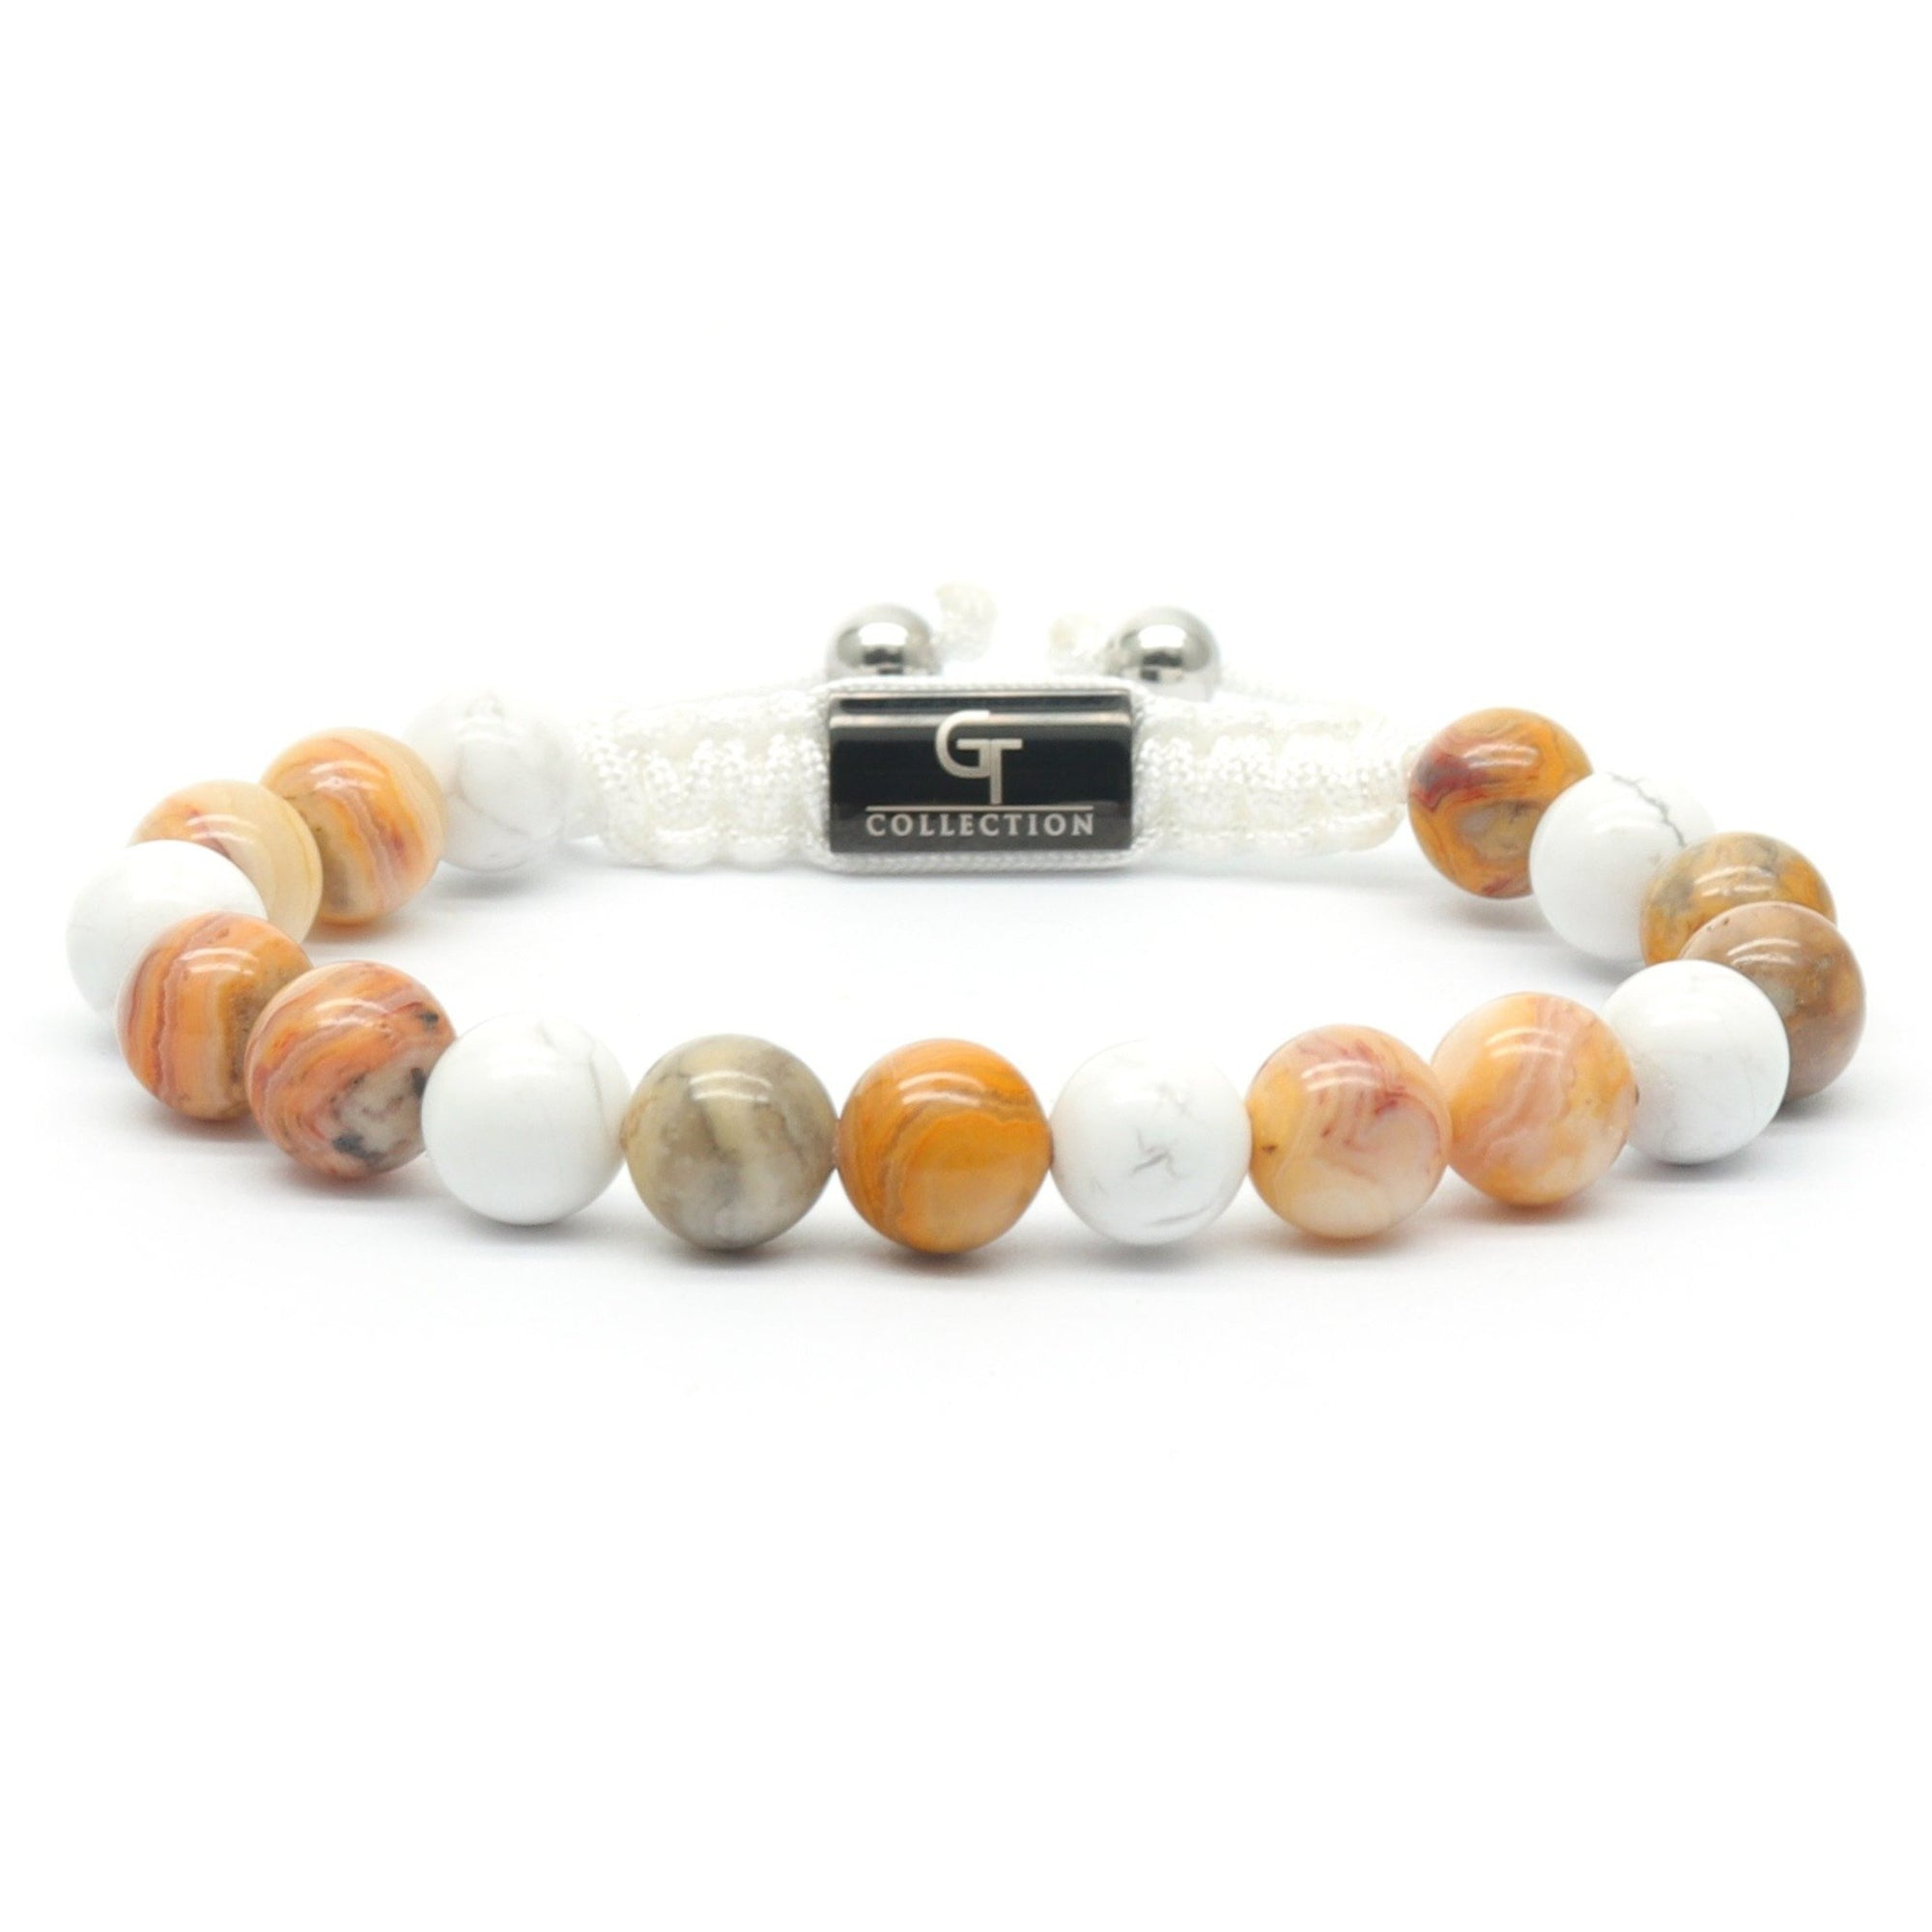 Women's Beaded Bracelet | Labradorite, Howlite Gemstones